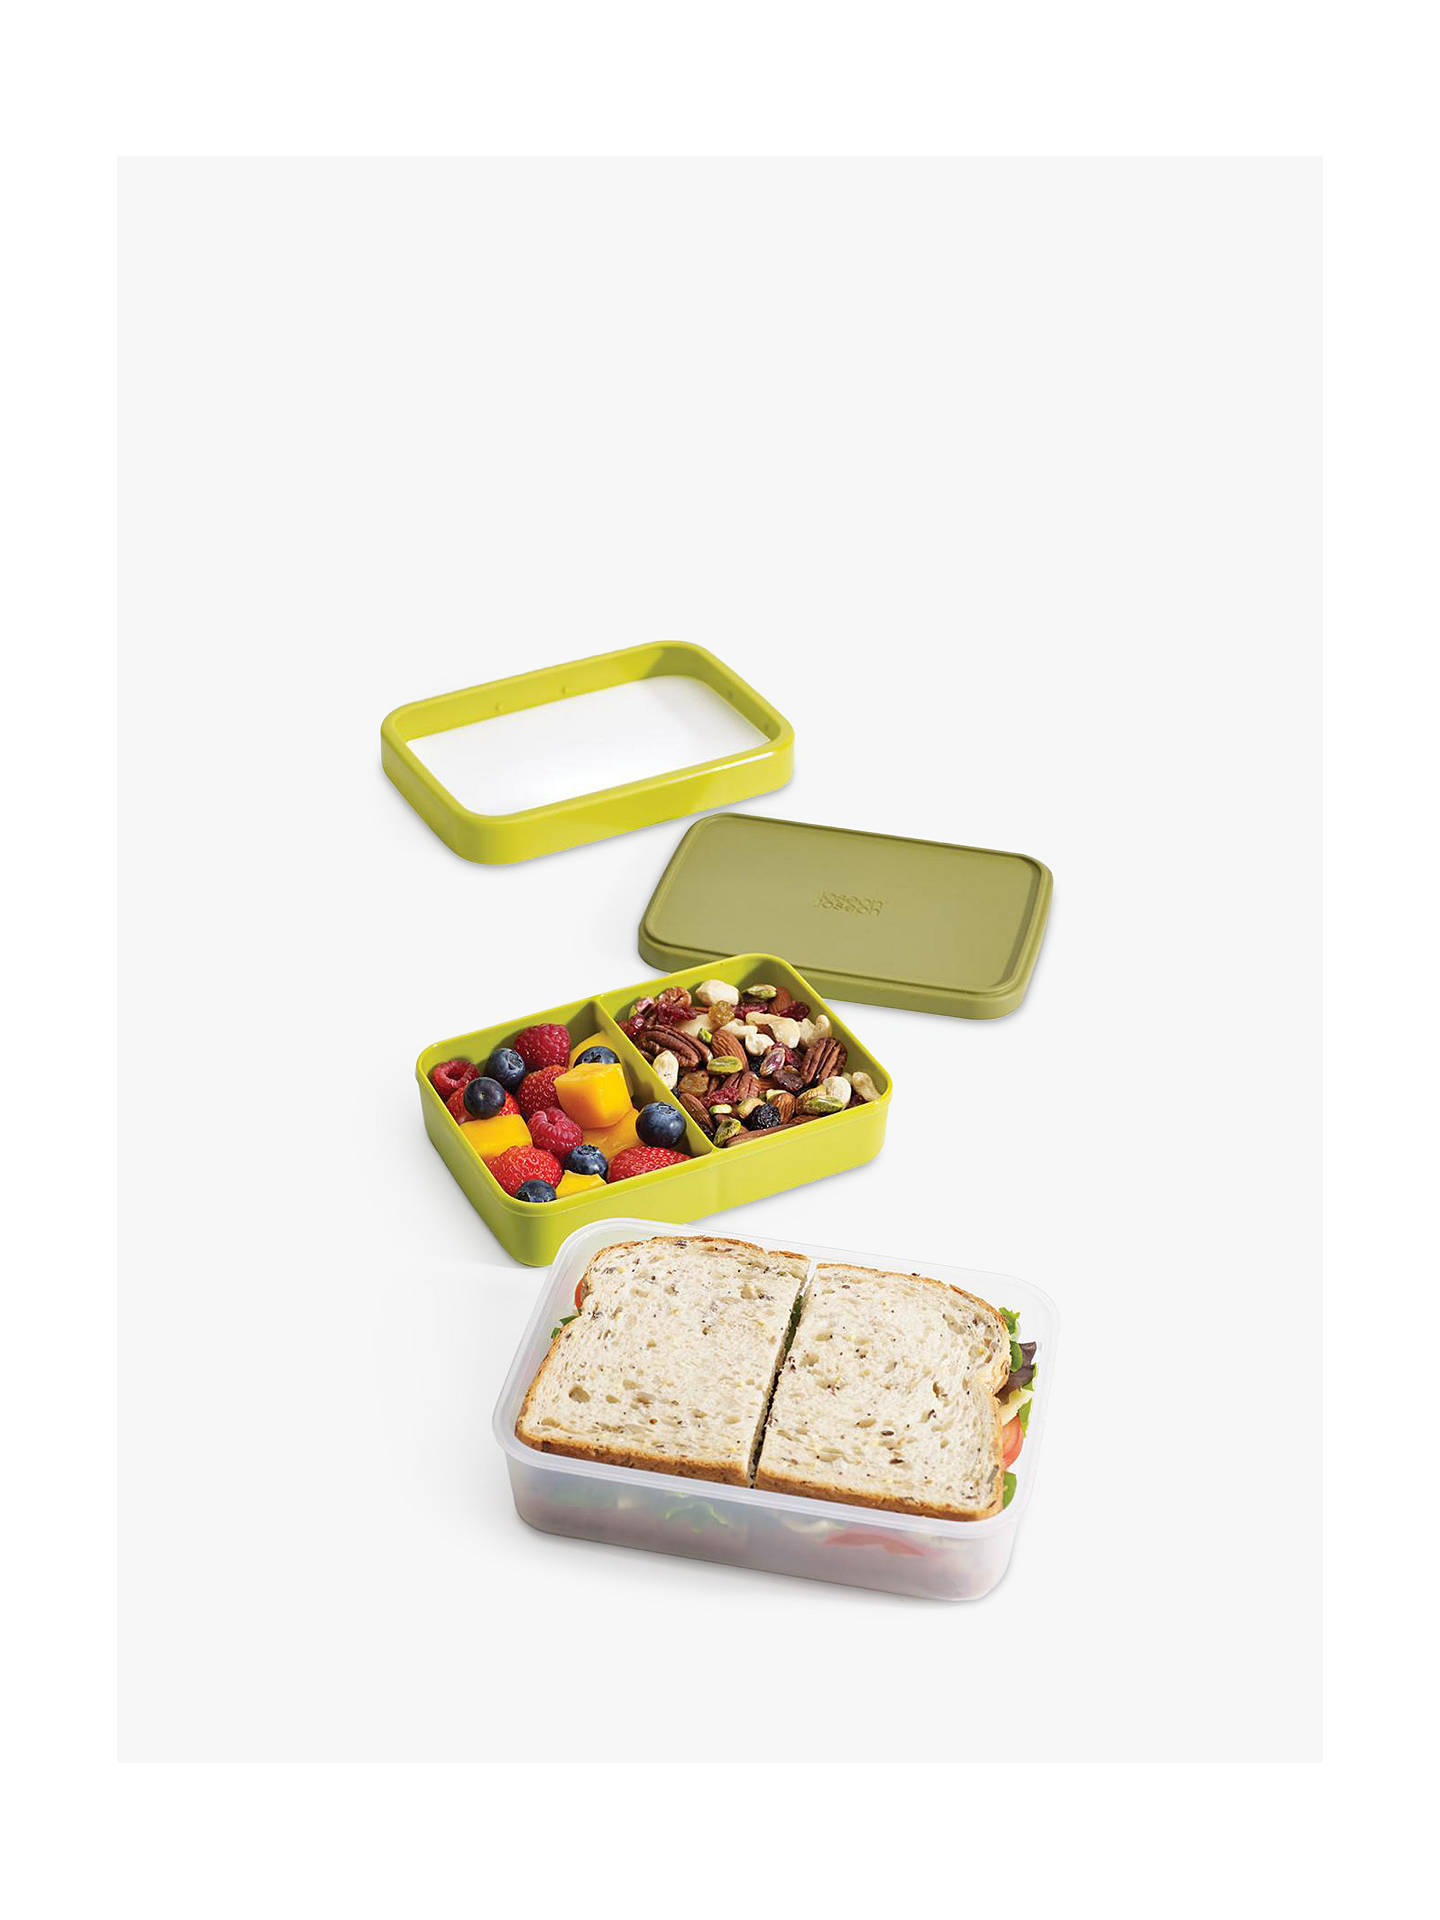 BuyJoseph Joseph GoEat Compact 2-in-1 Lunch Box, Green Online at johnlewis.com